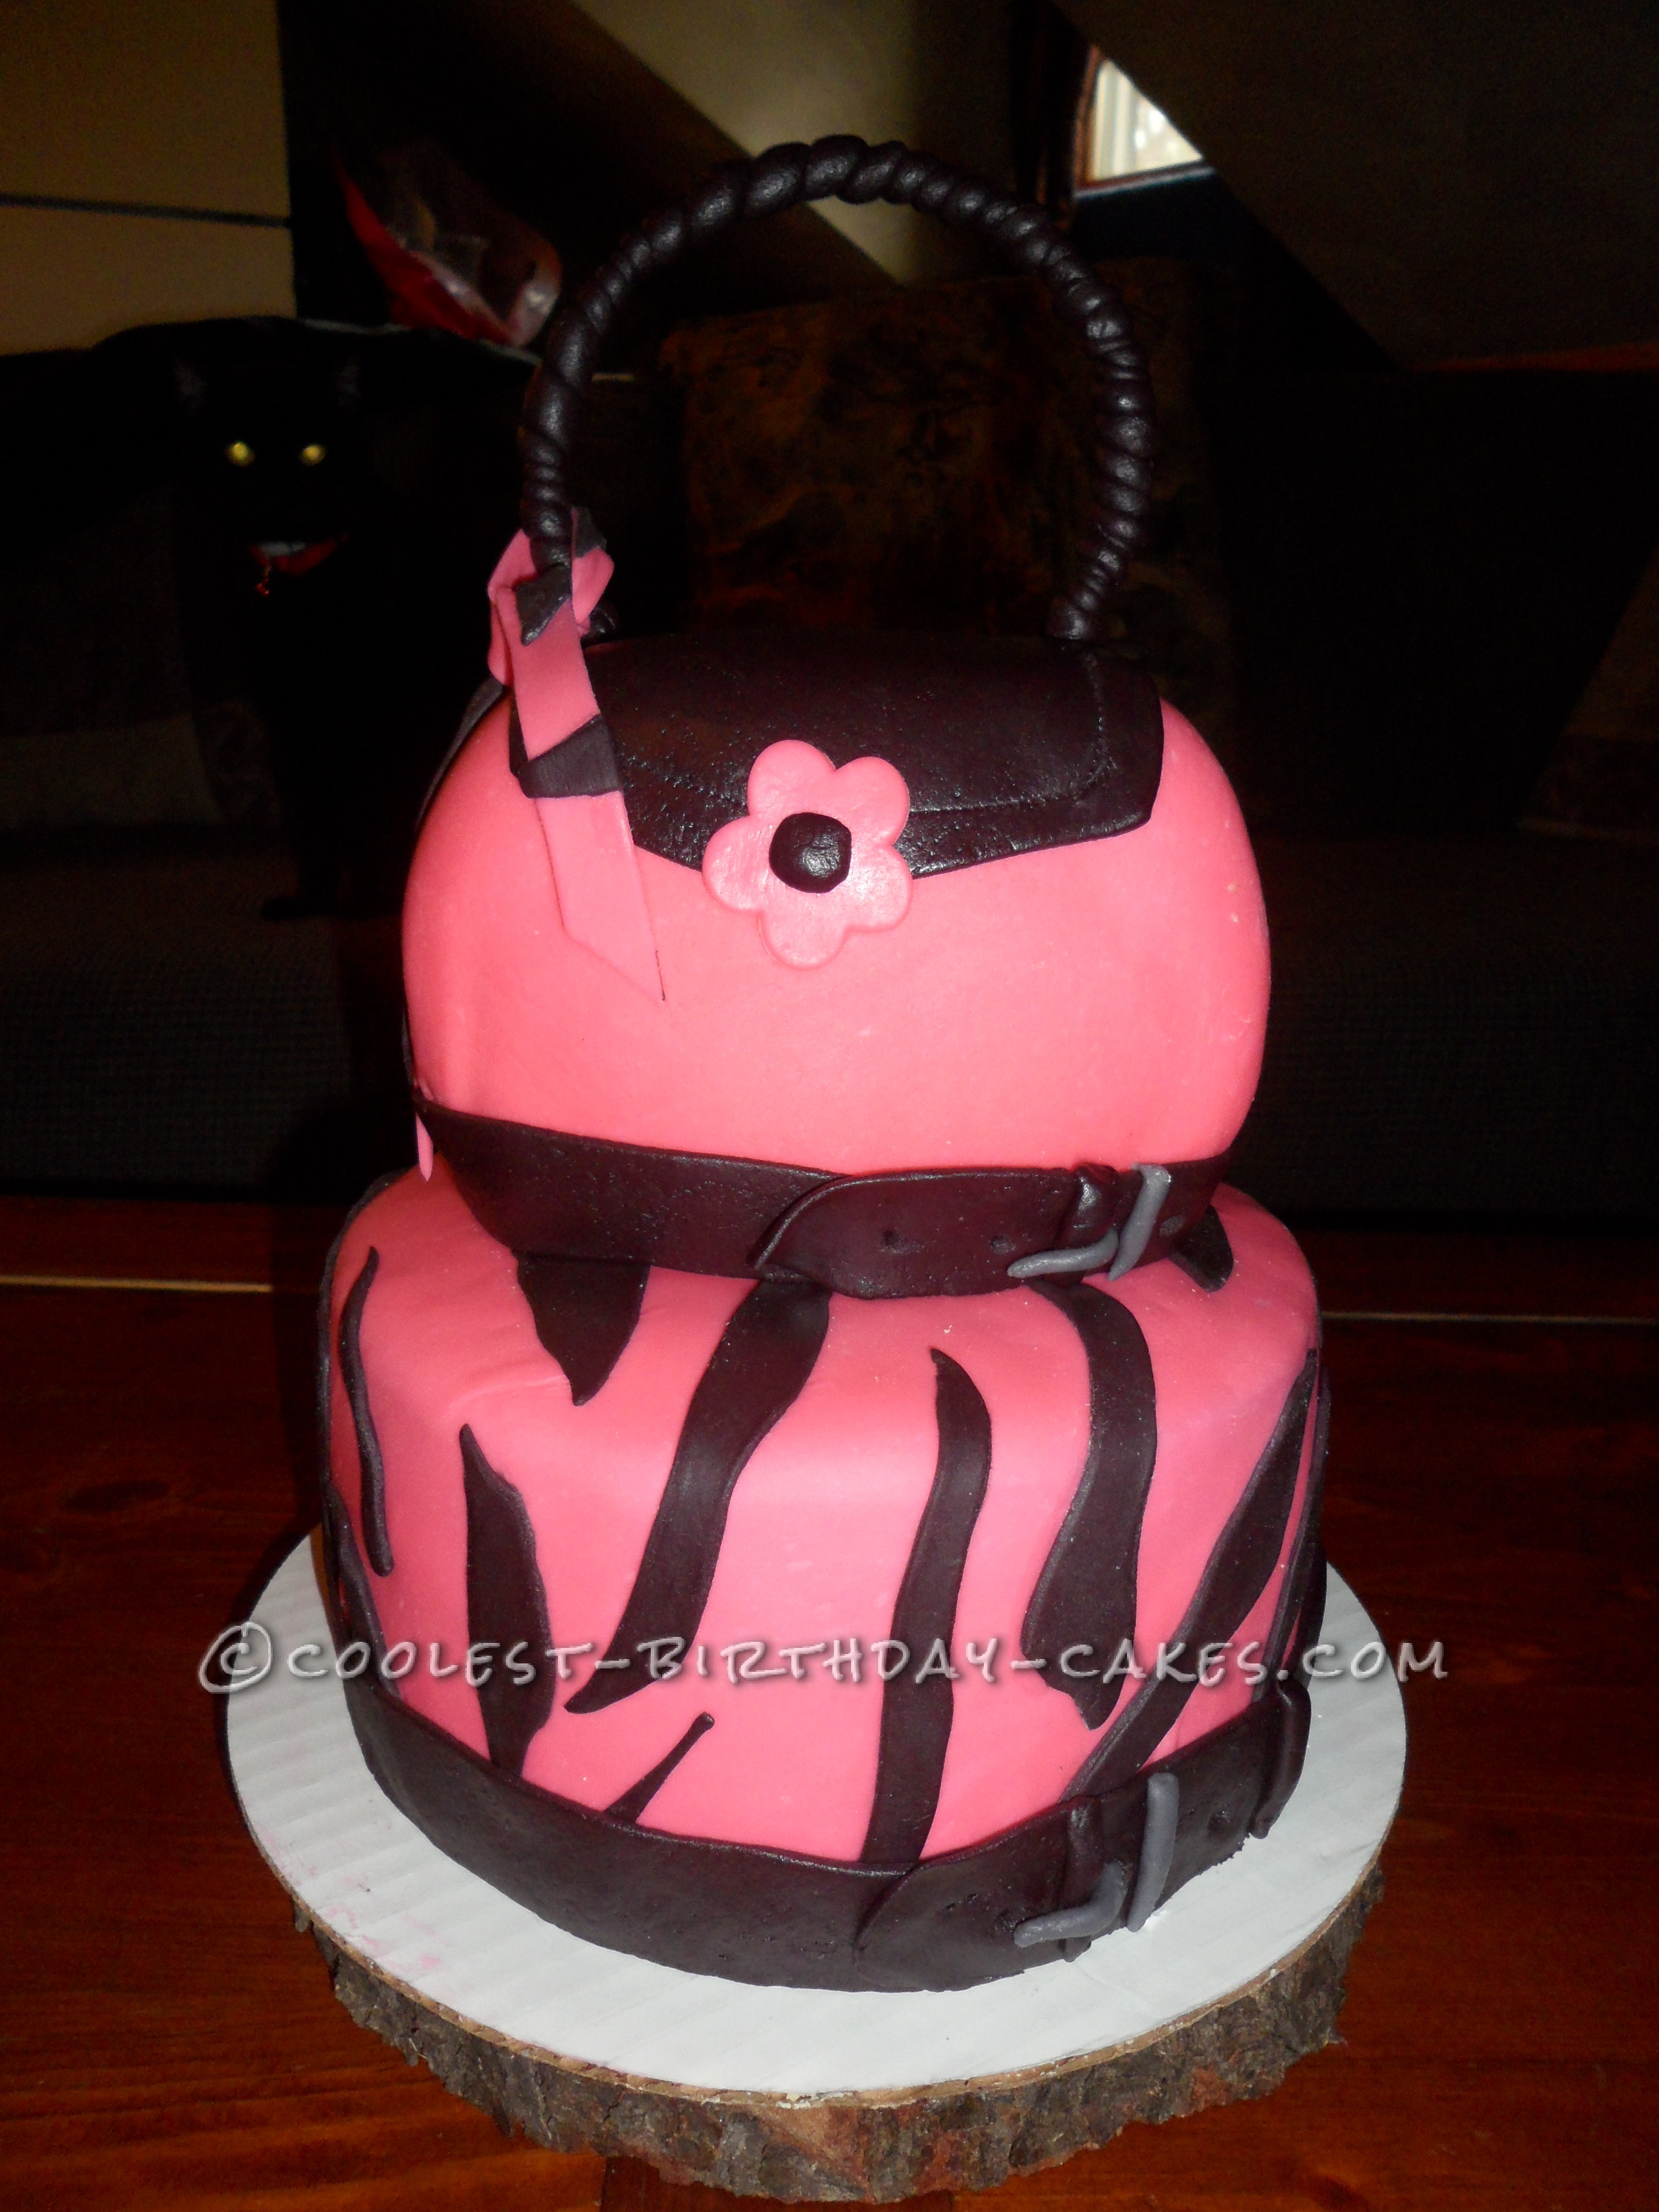 This Is A Stacked Cake Made To Look Like Purse On The Top Bottom Double Layered Covered In Fondant With Zebra Stripes